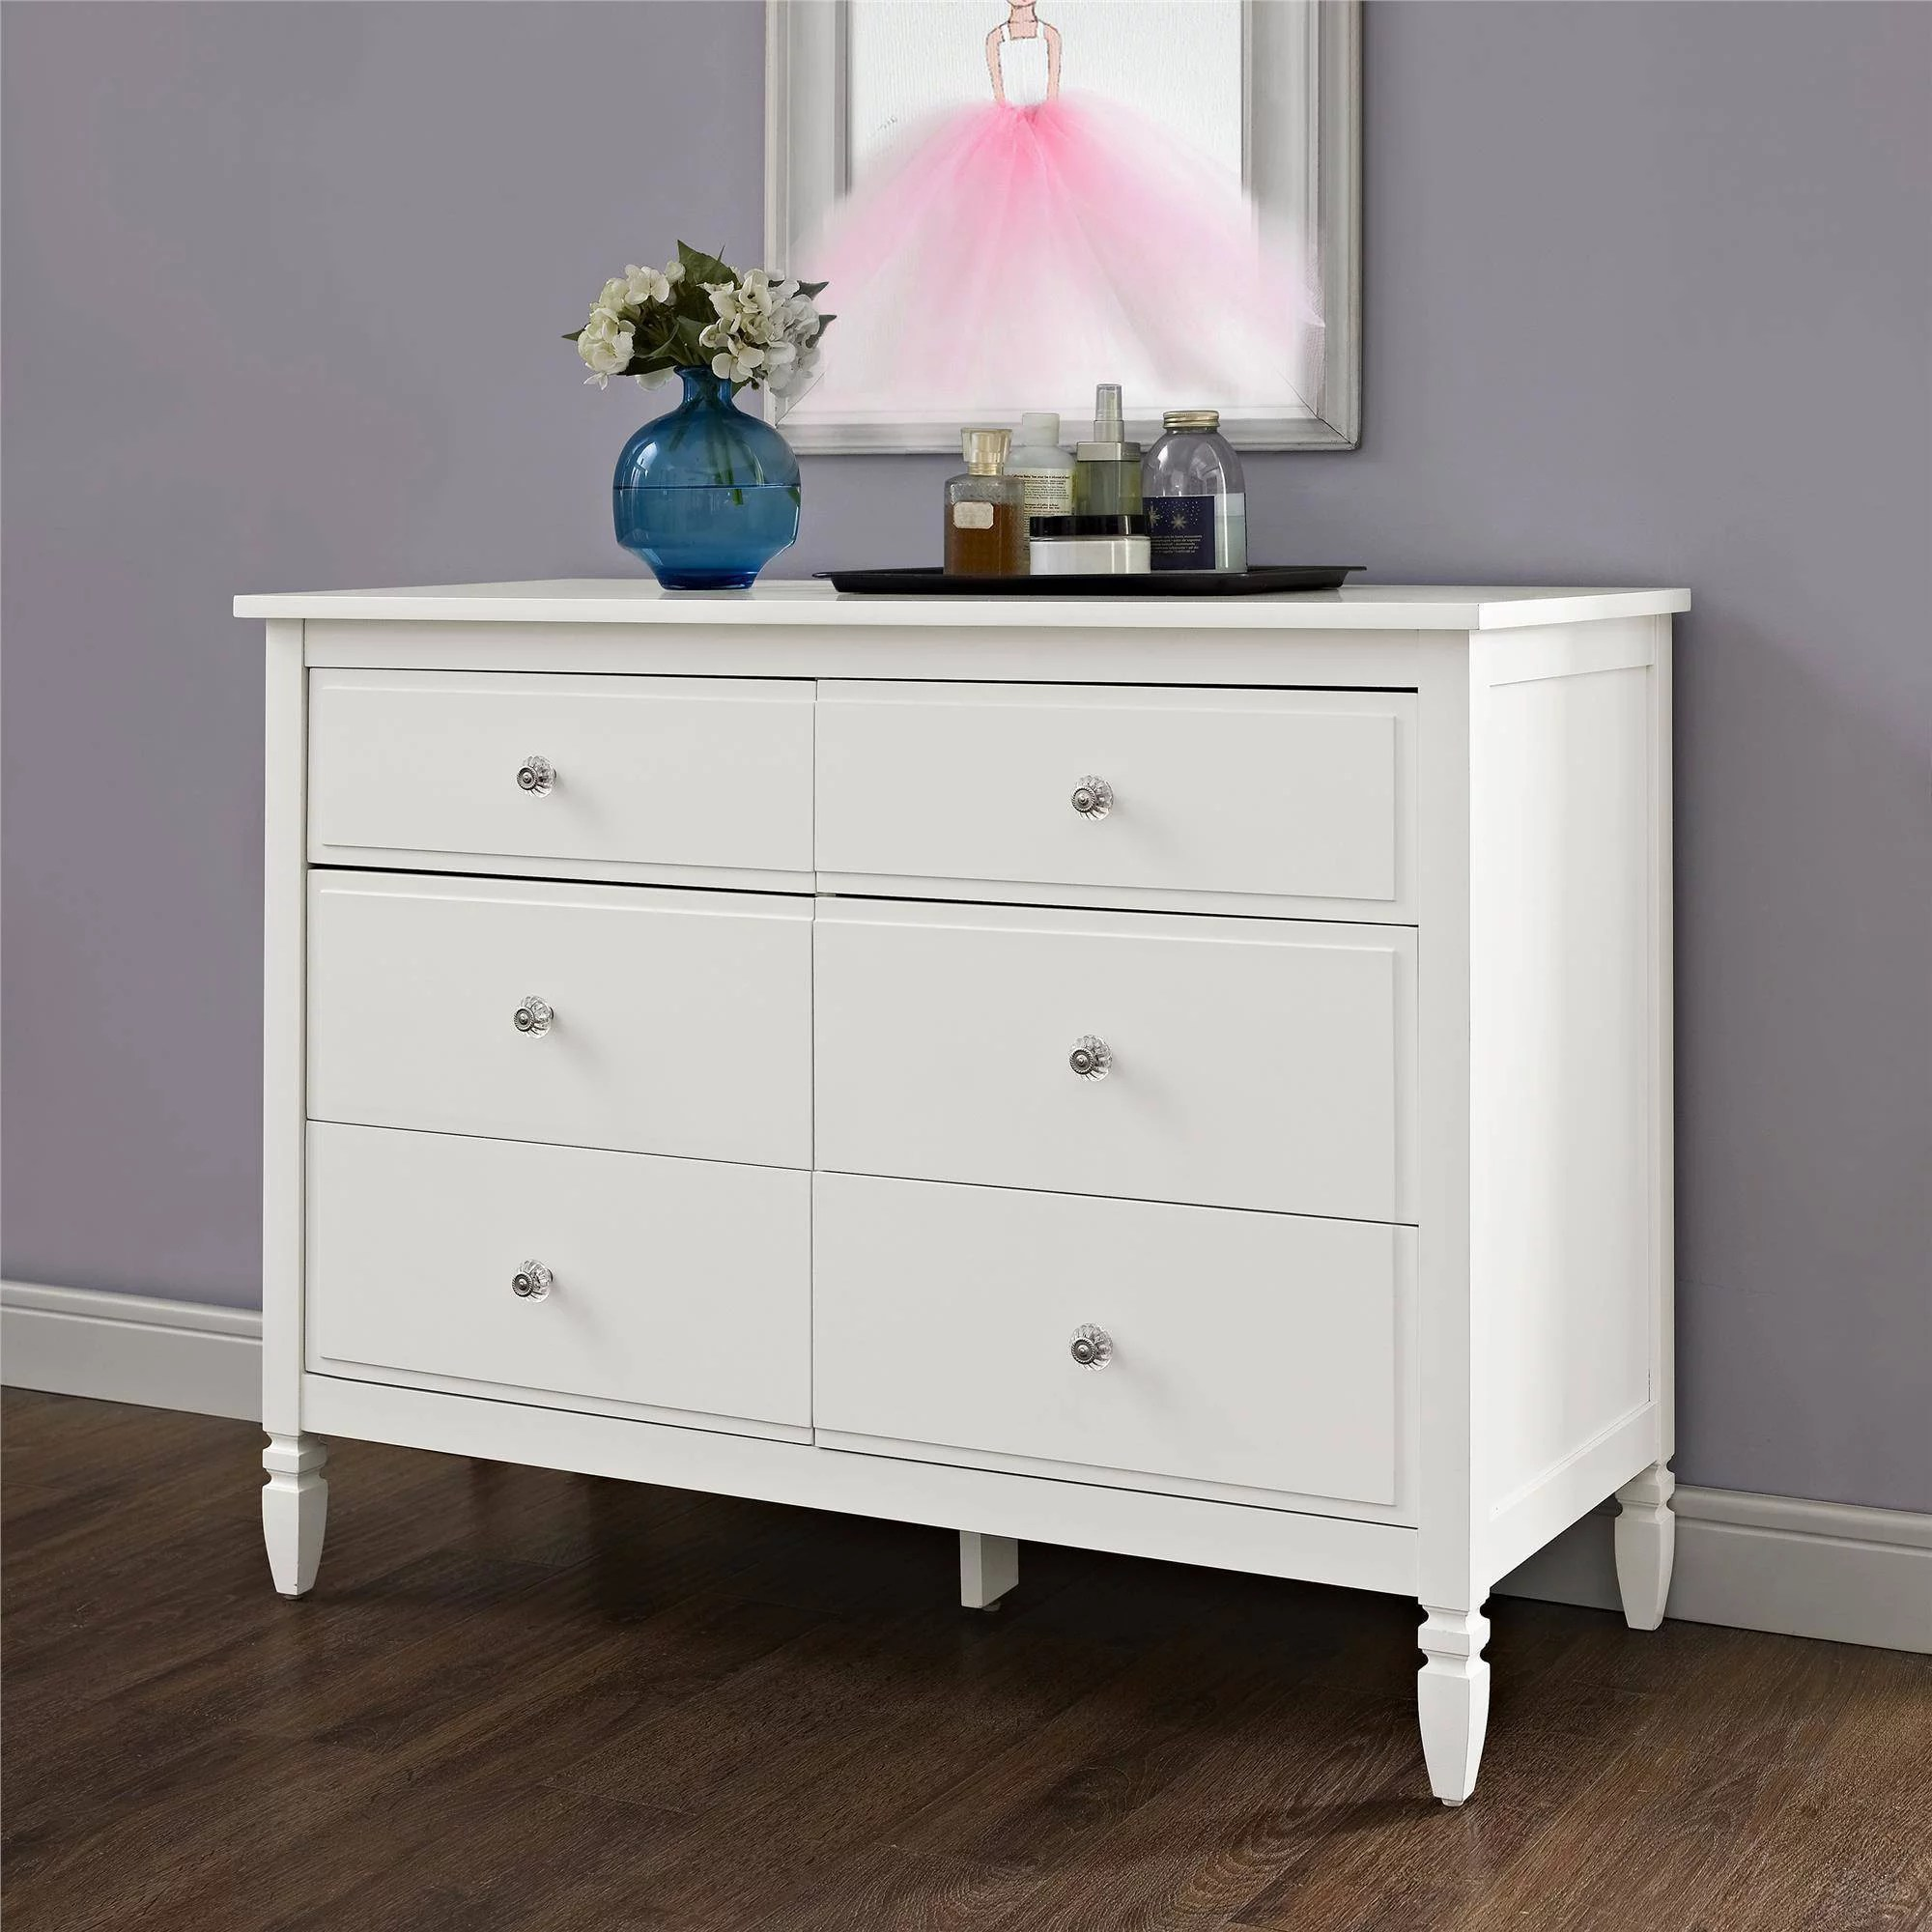 better homes and gardens bedroom furniture walmart com on walmart bedroom furniture clearance id=49401